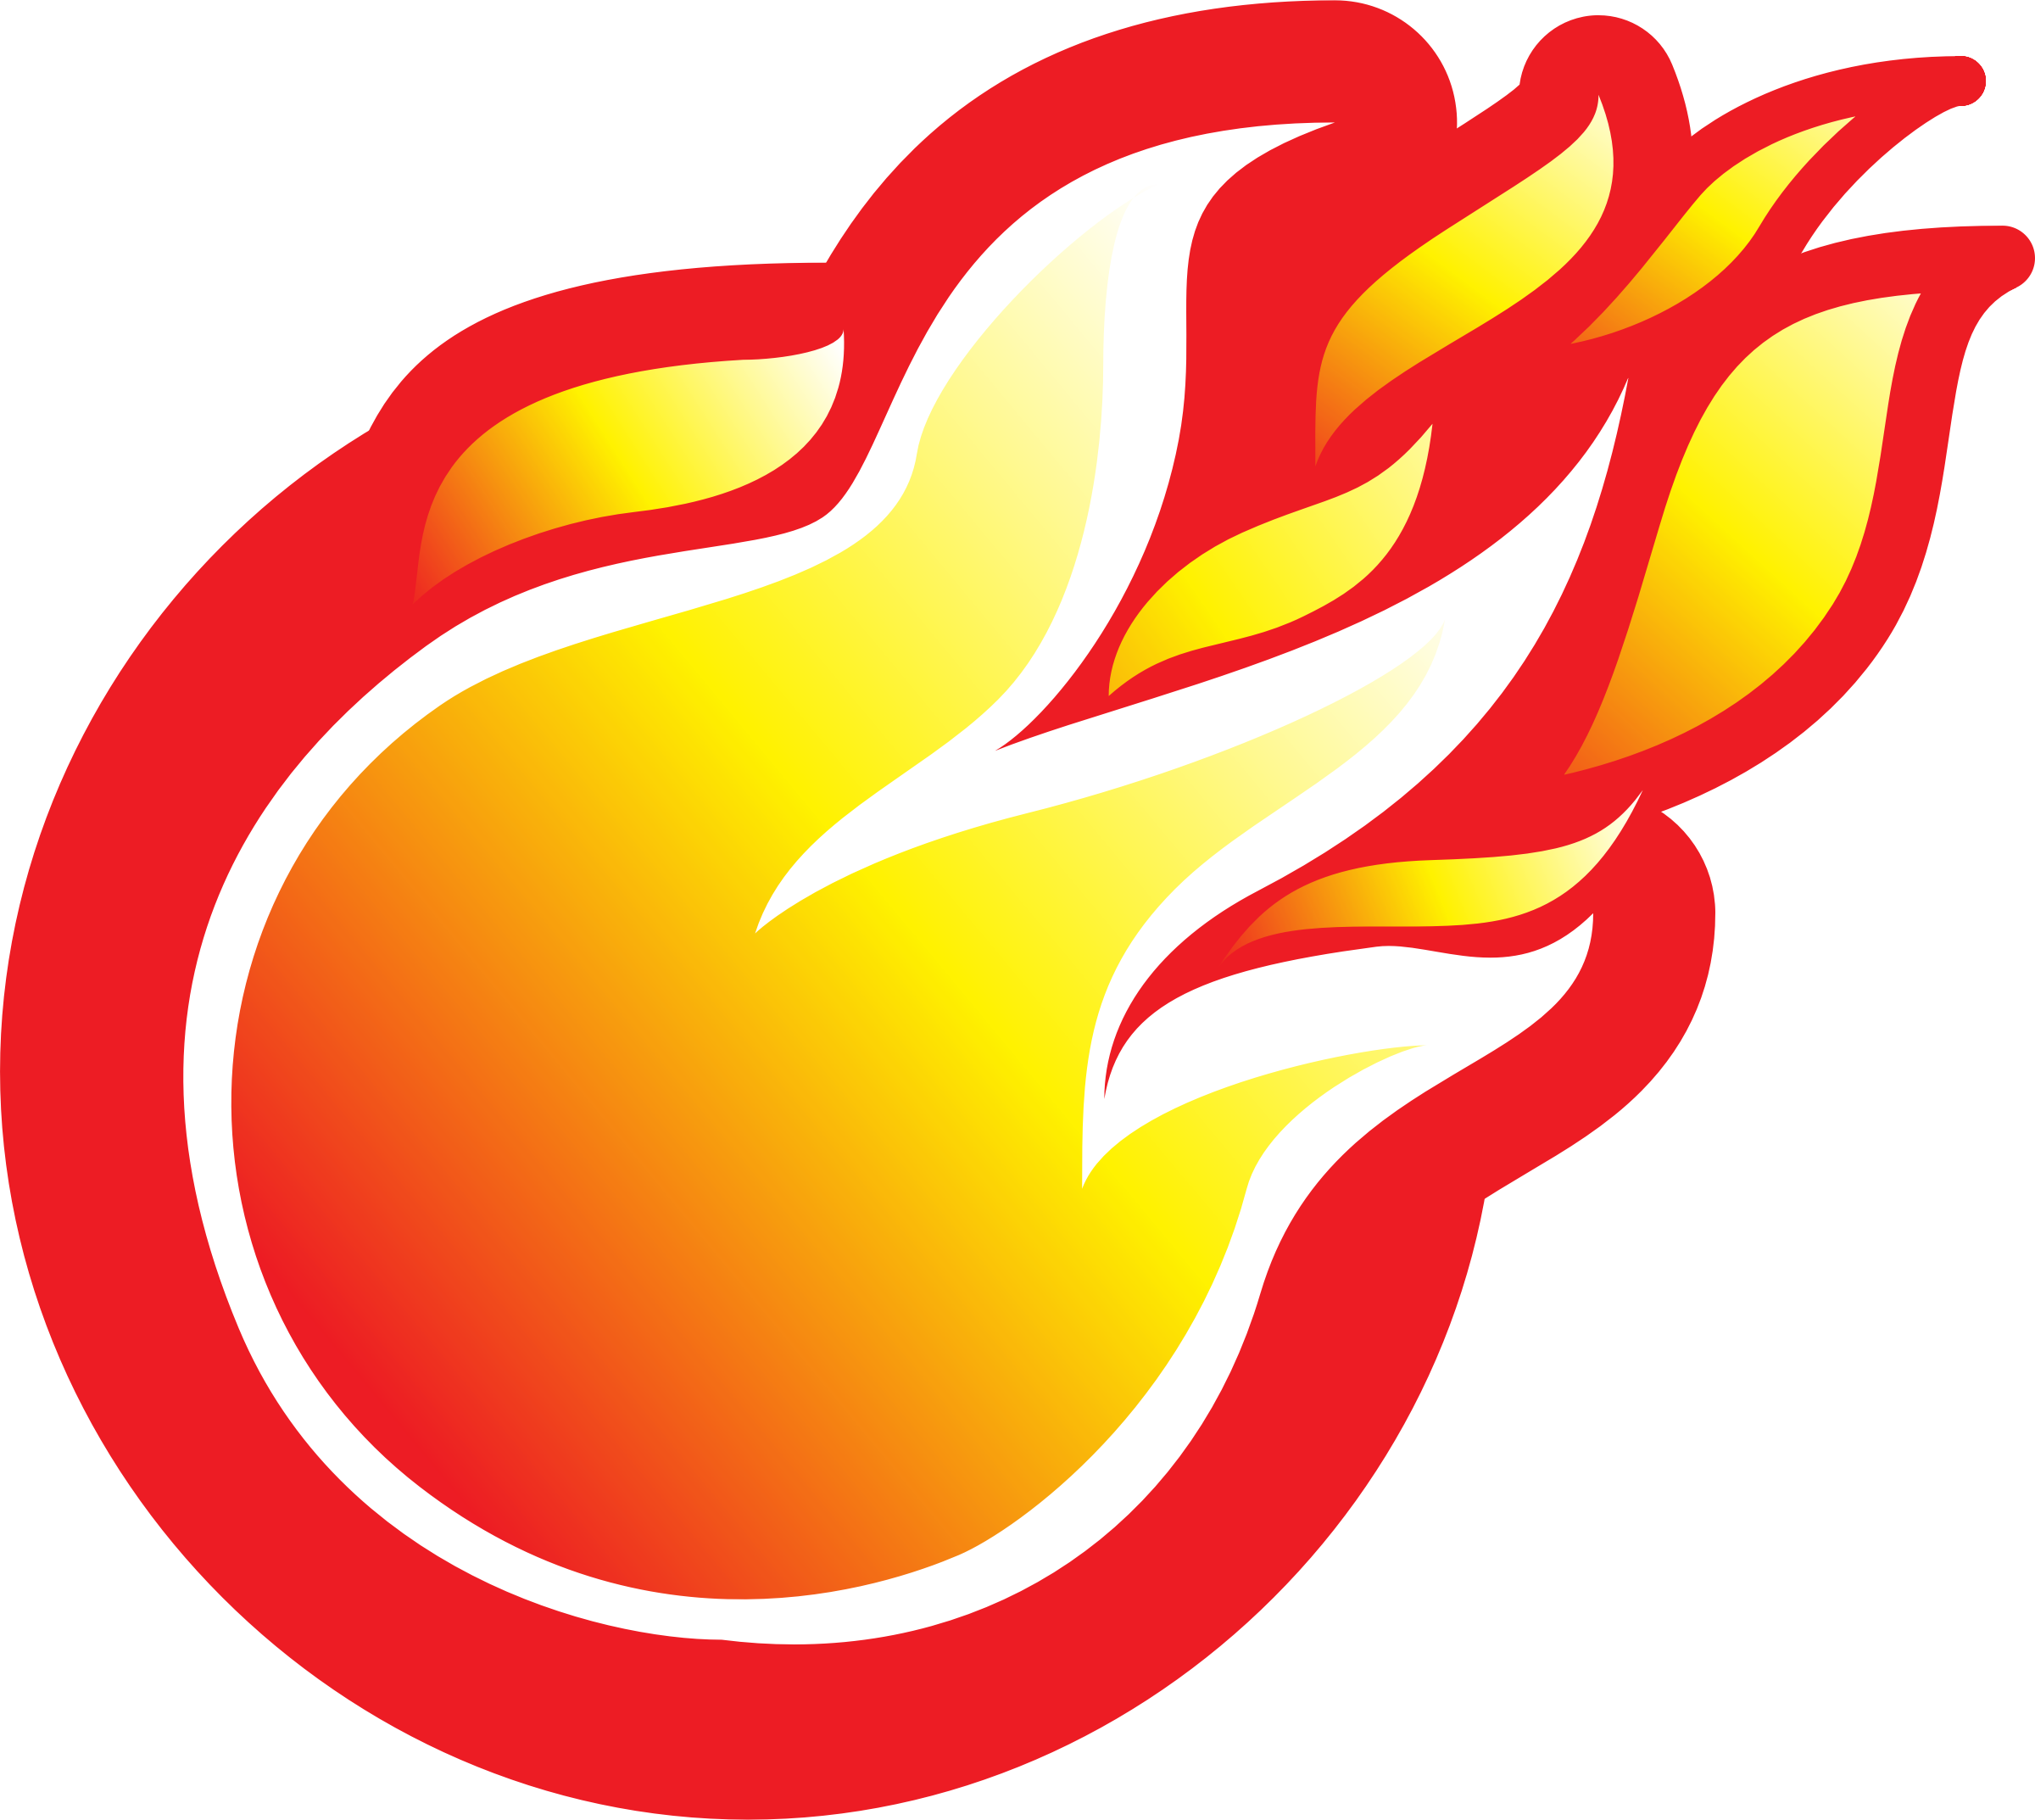 Fire Clipart at GetDrawings.com | Free for personal use Fire Clipart ... picture freeuse library